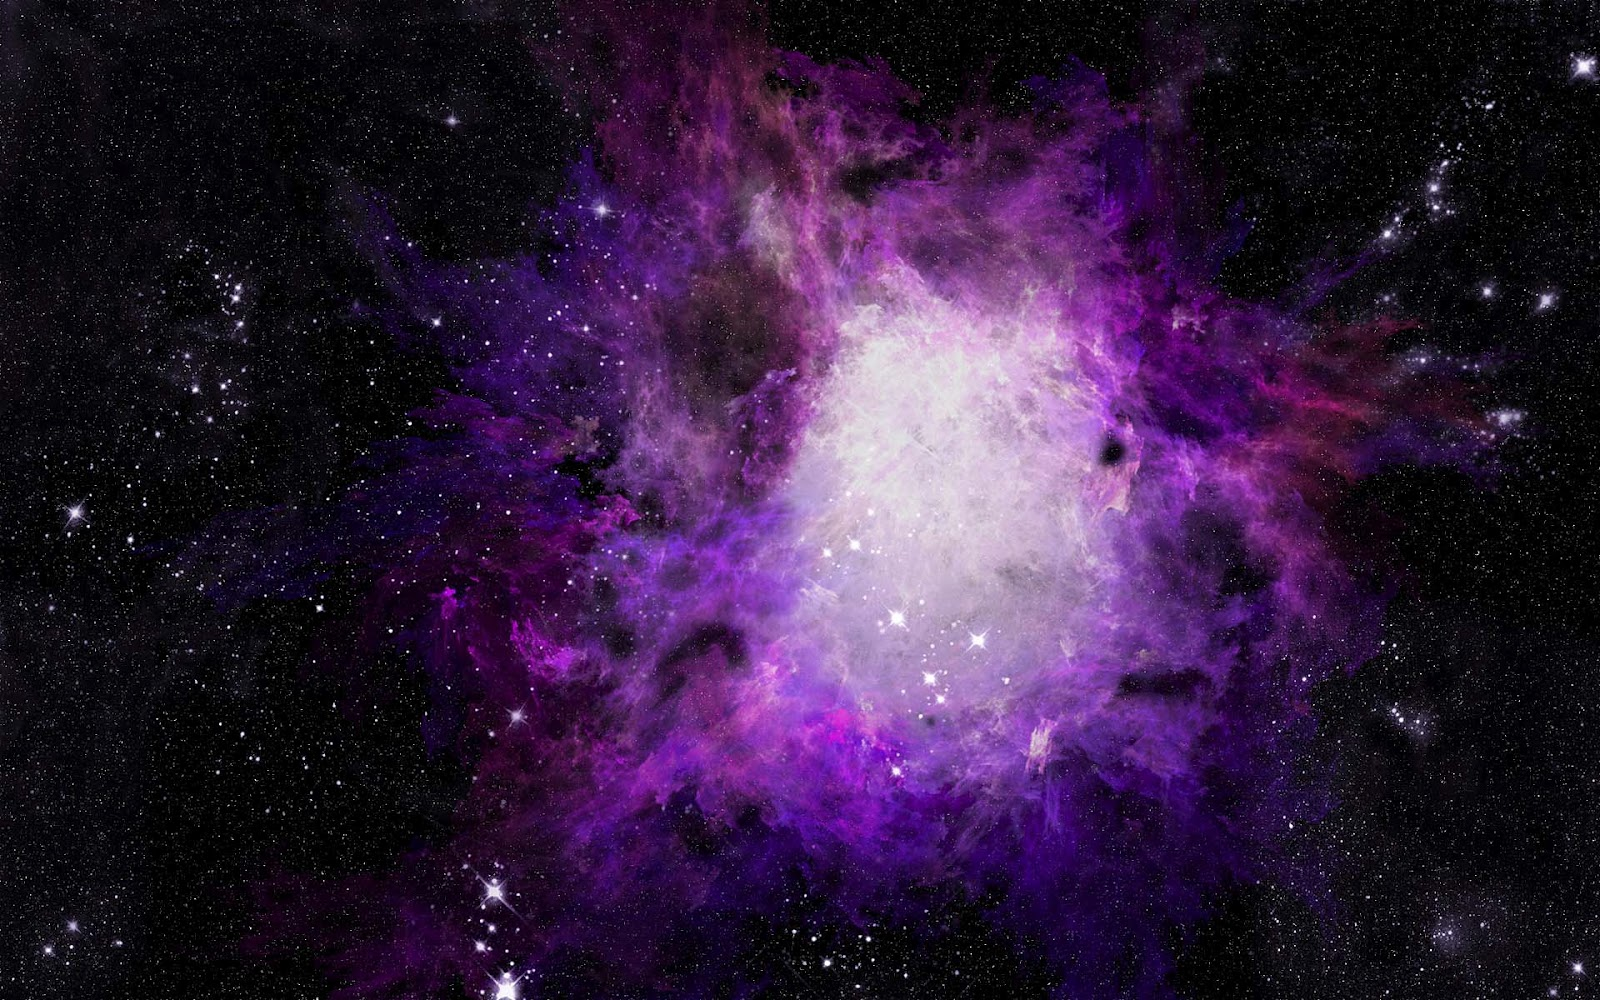 4k Galaxy Wallpaper 62 Images: Purple Galaxy Wallpapers (62 Wallpapers)